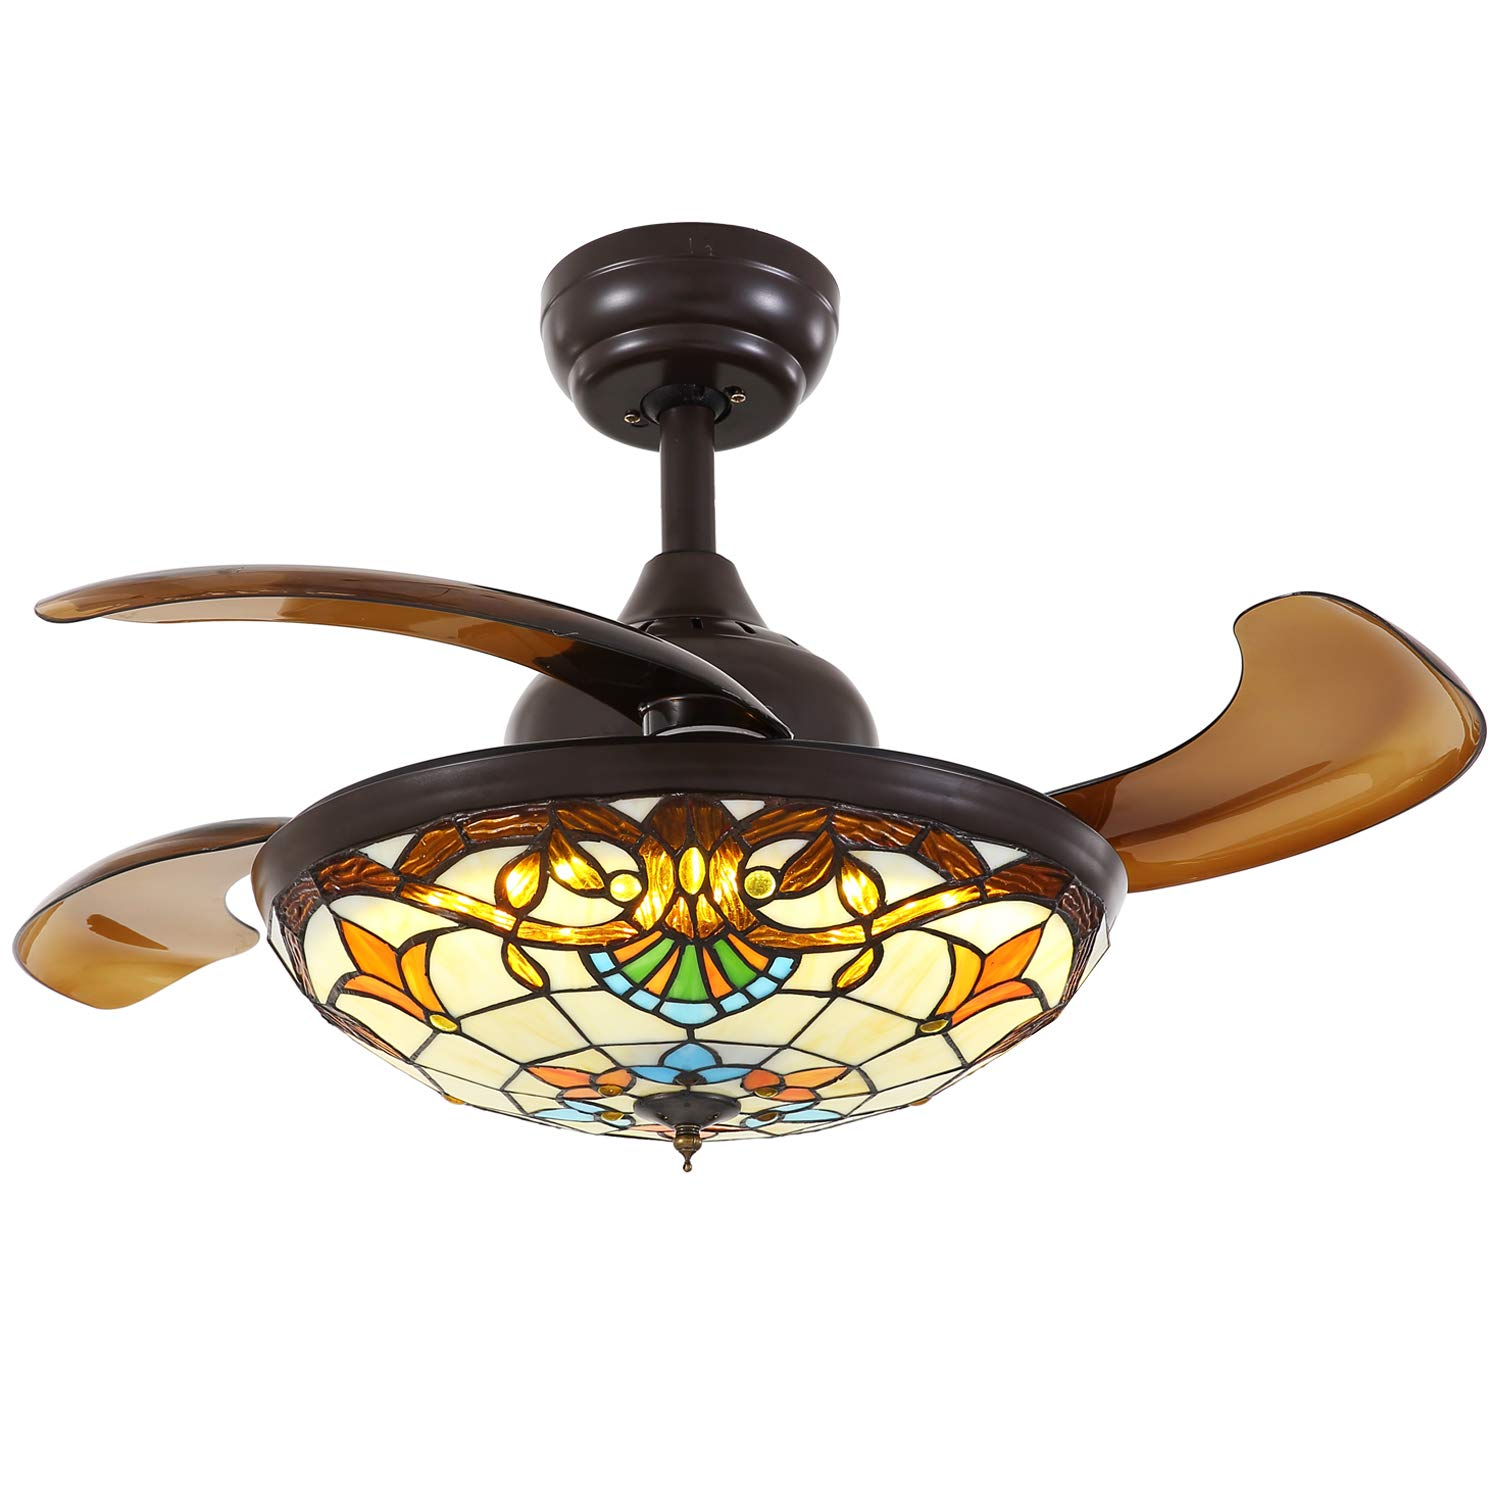 Siljoy Tiffany Style Ceiling Fans with Lights and Retractable Blades Dark Brown Invisible Fan Chandelier Dimmable Fandelier LED Lighting Stepless Adjustable (Warm/Daylight/Cool White) 36 INCH